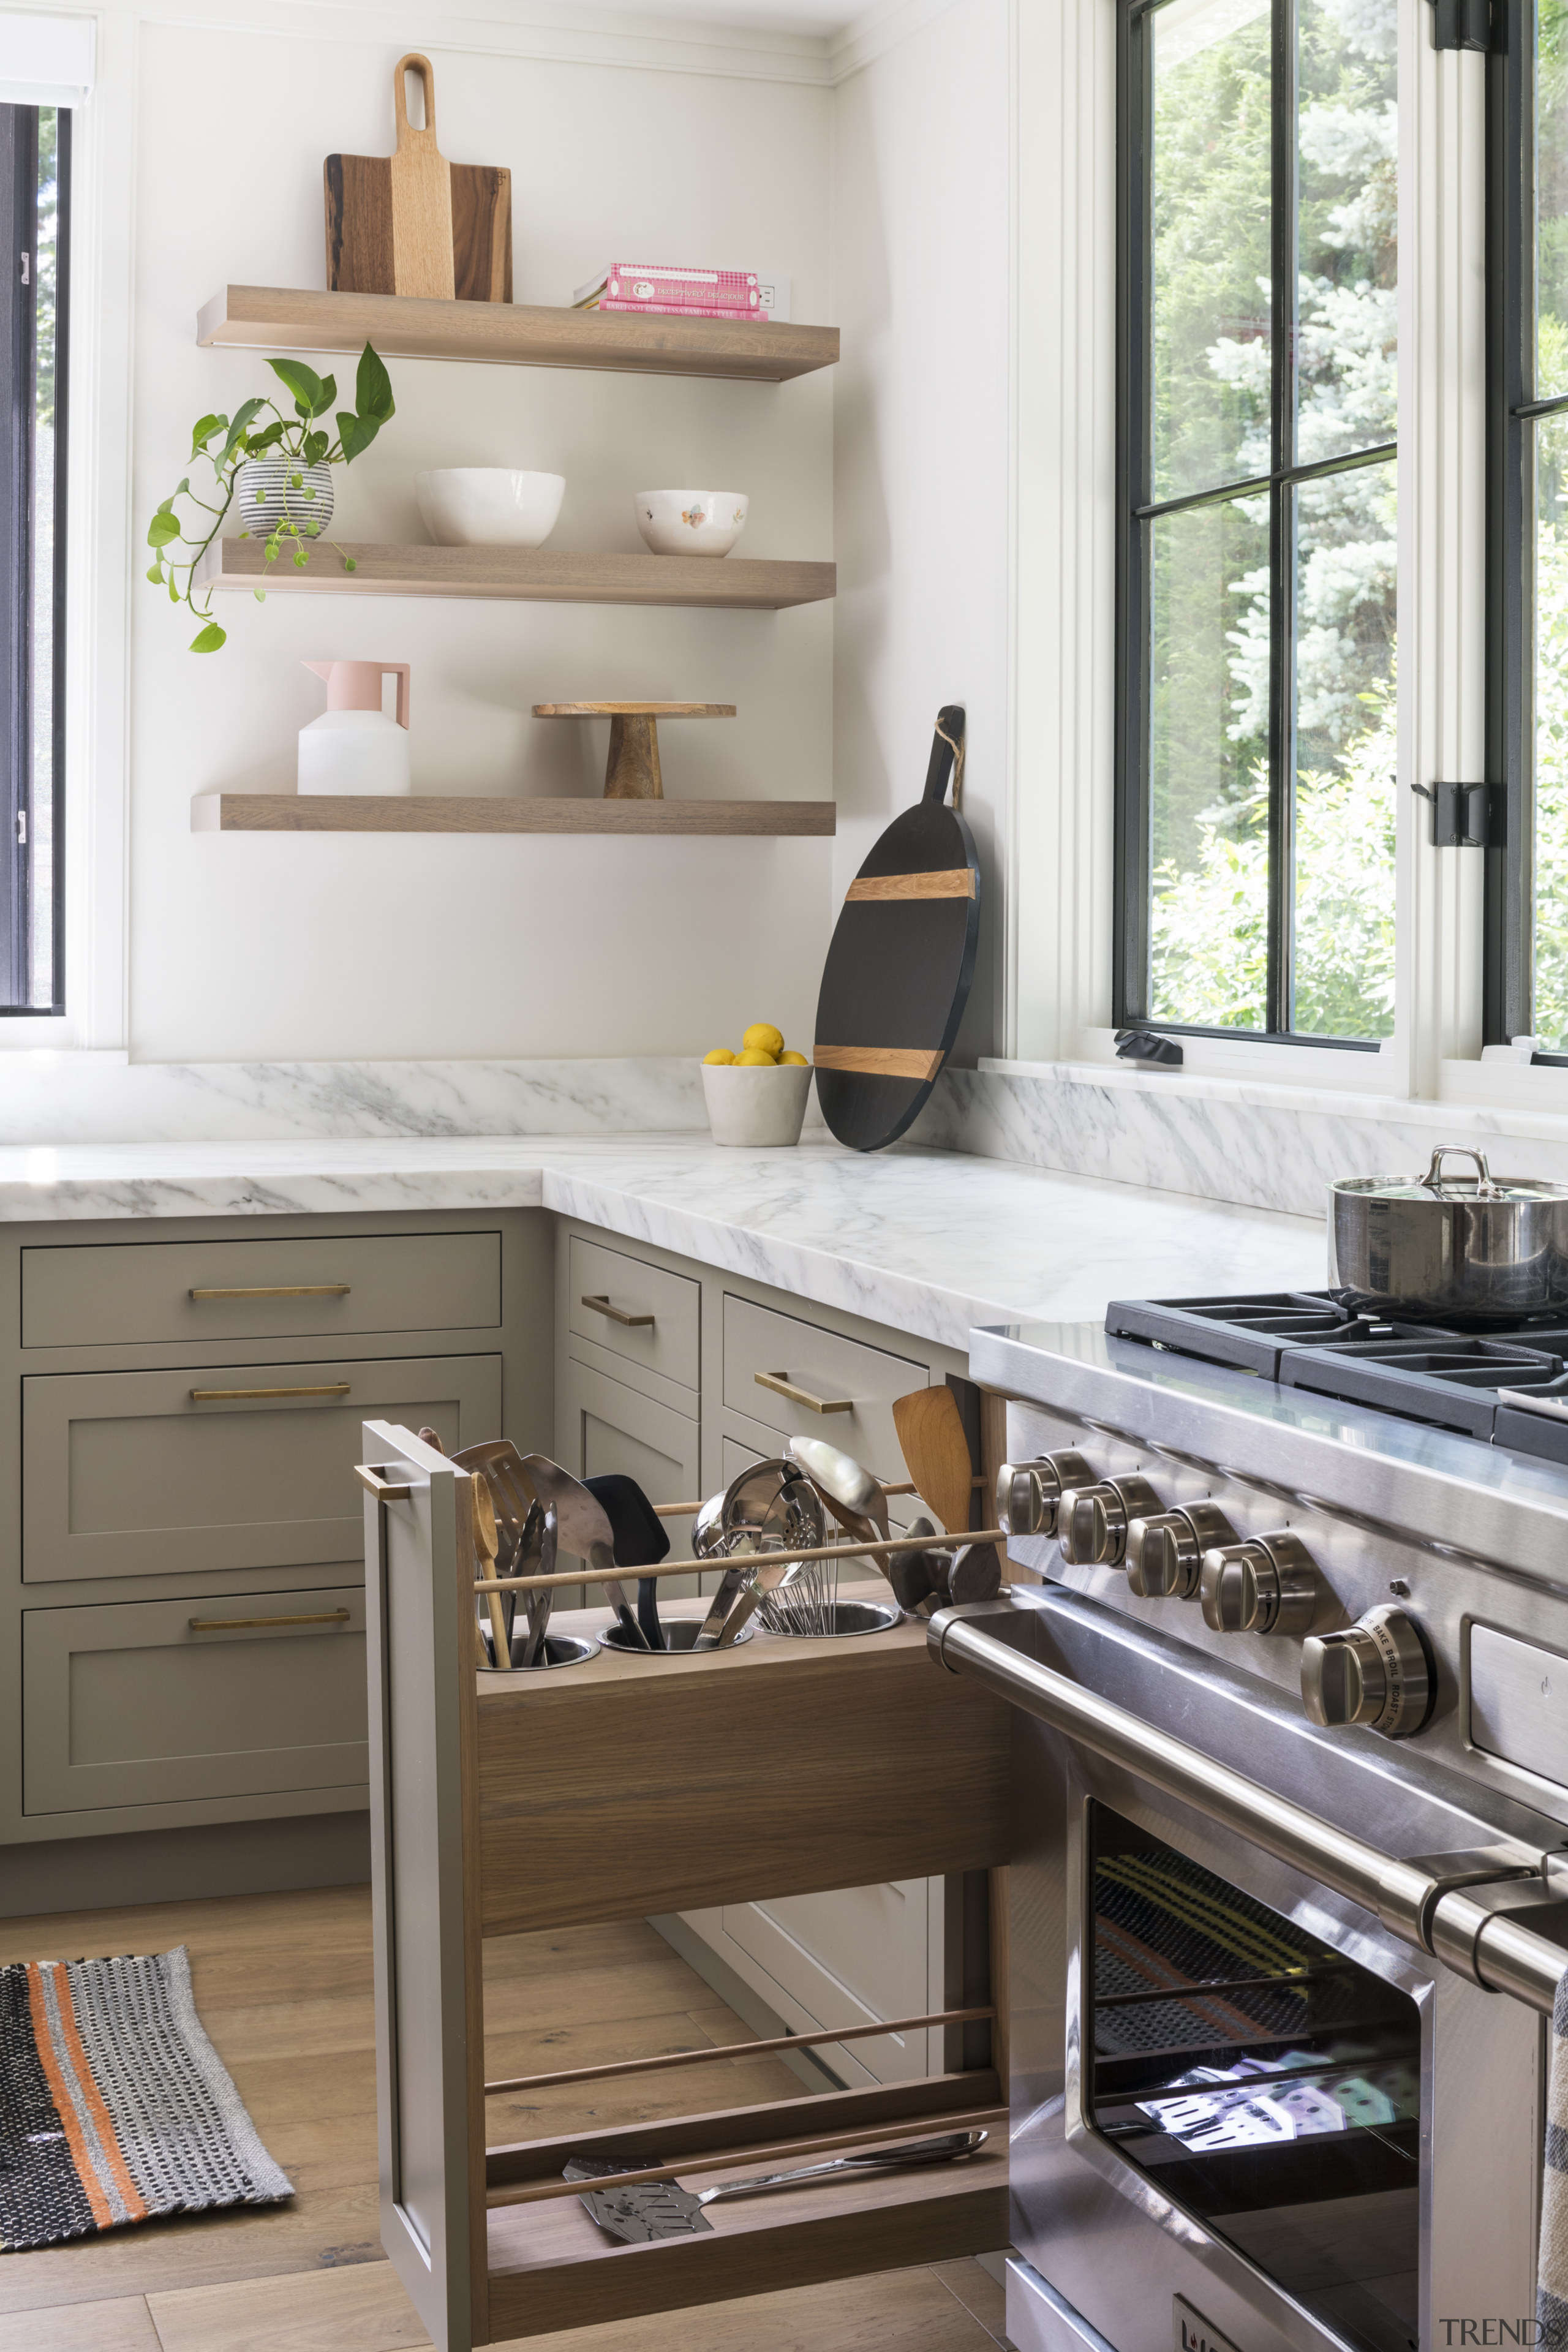 Slotted storage ups the functionality in this kitchen.